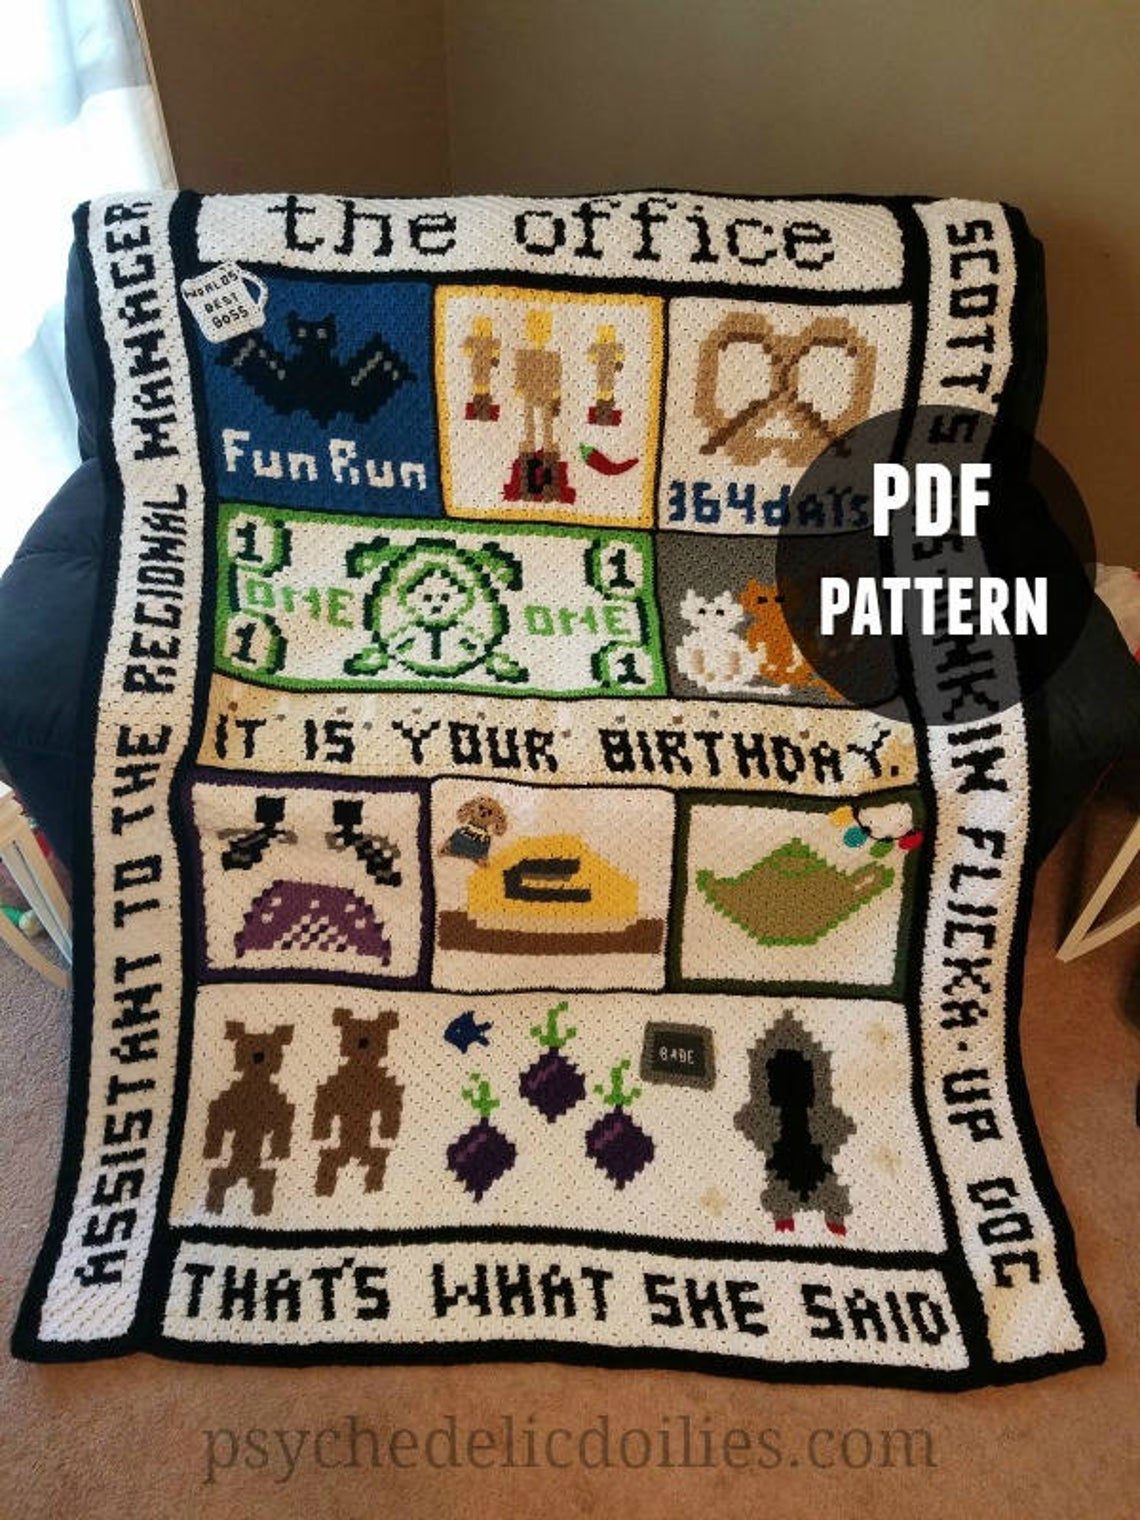 Get the crochet pattern, designed by Jessica Bowman of Psychedelic Doilies #crochet